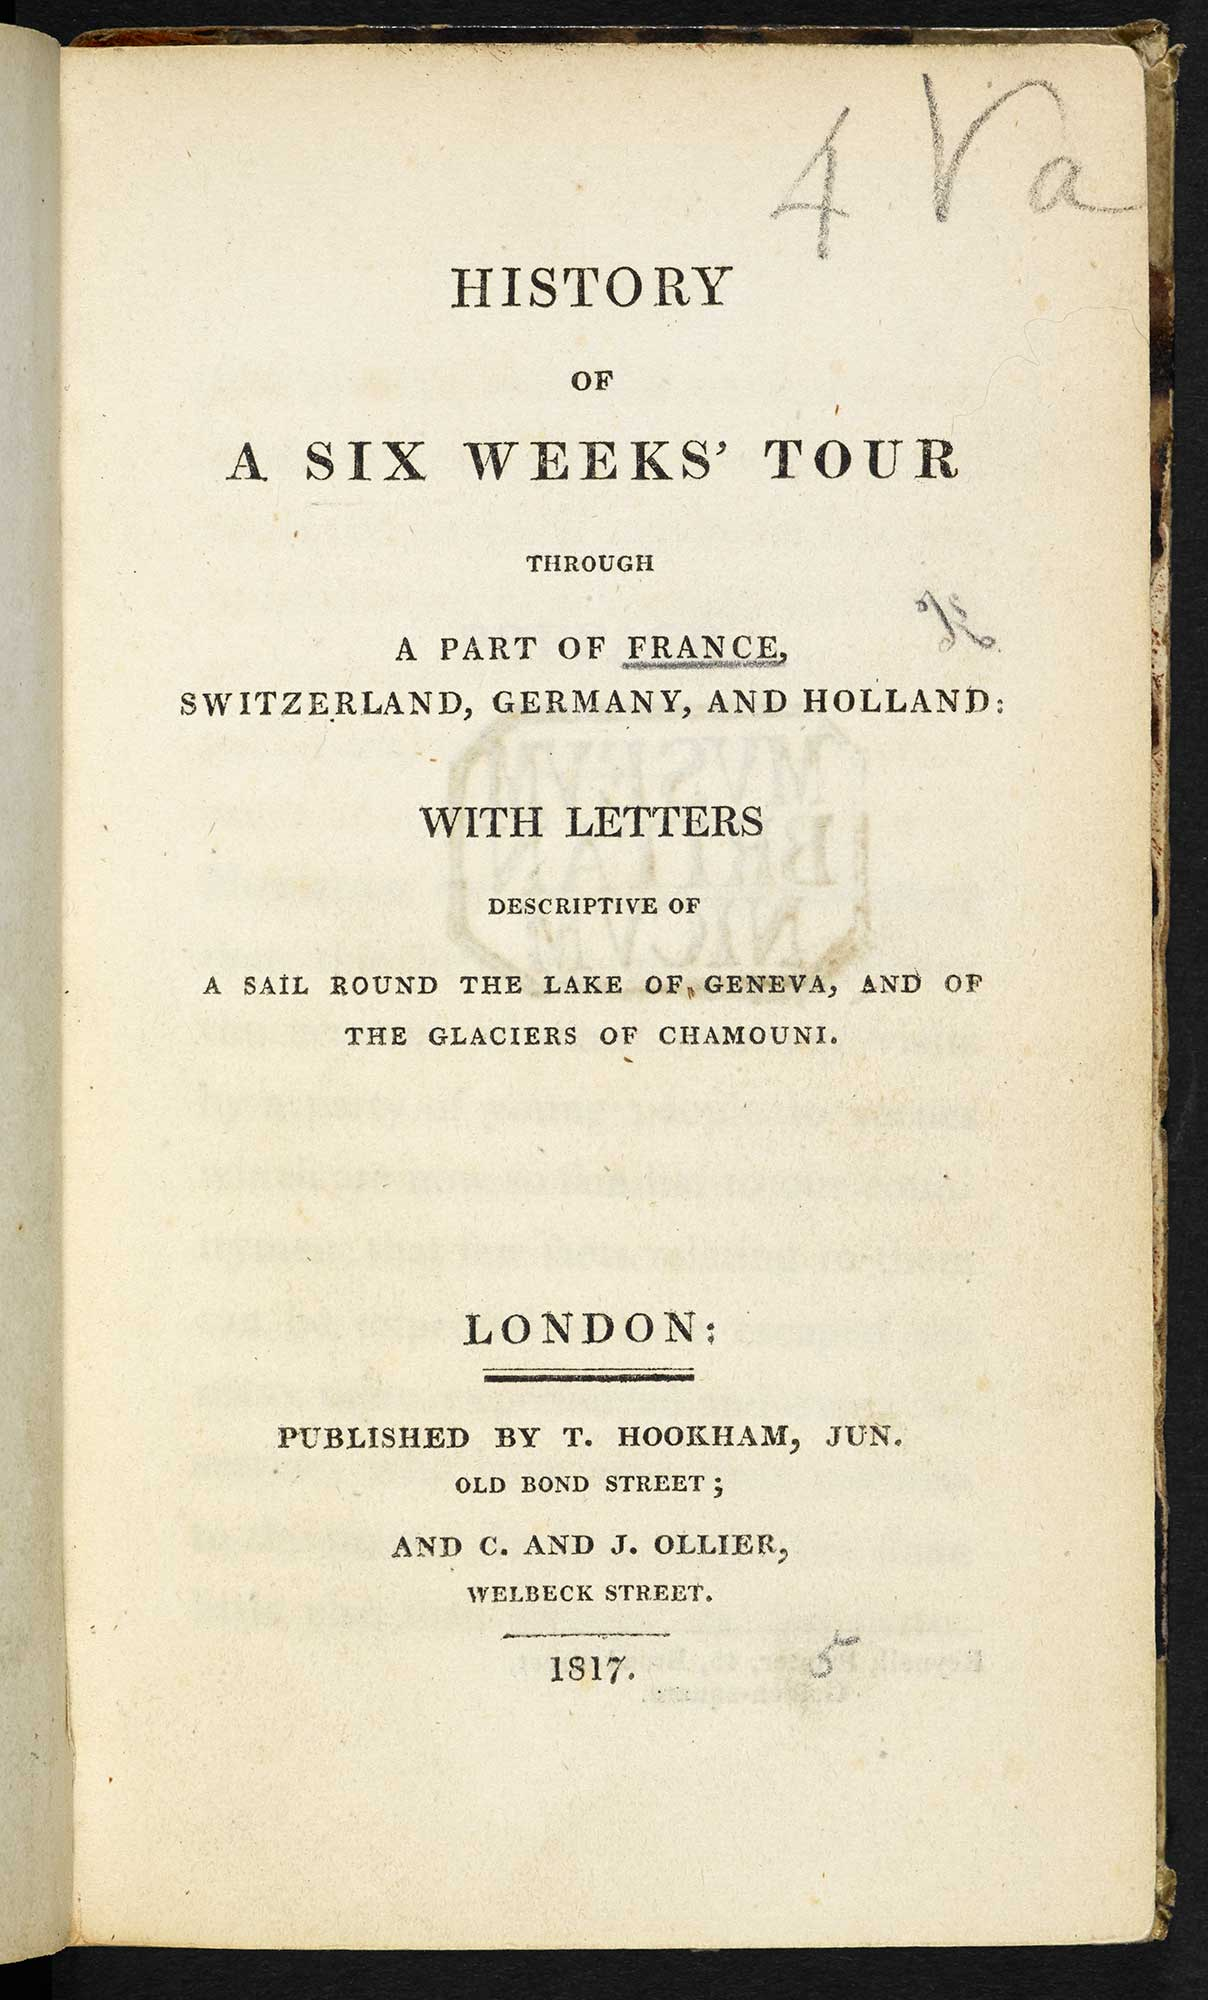 Mary Shelley's History of a six weeks' tour  [page: title page]